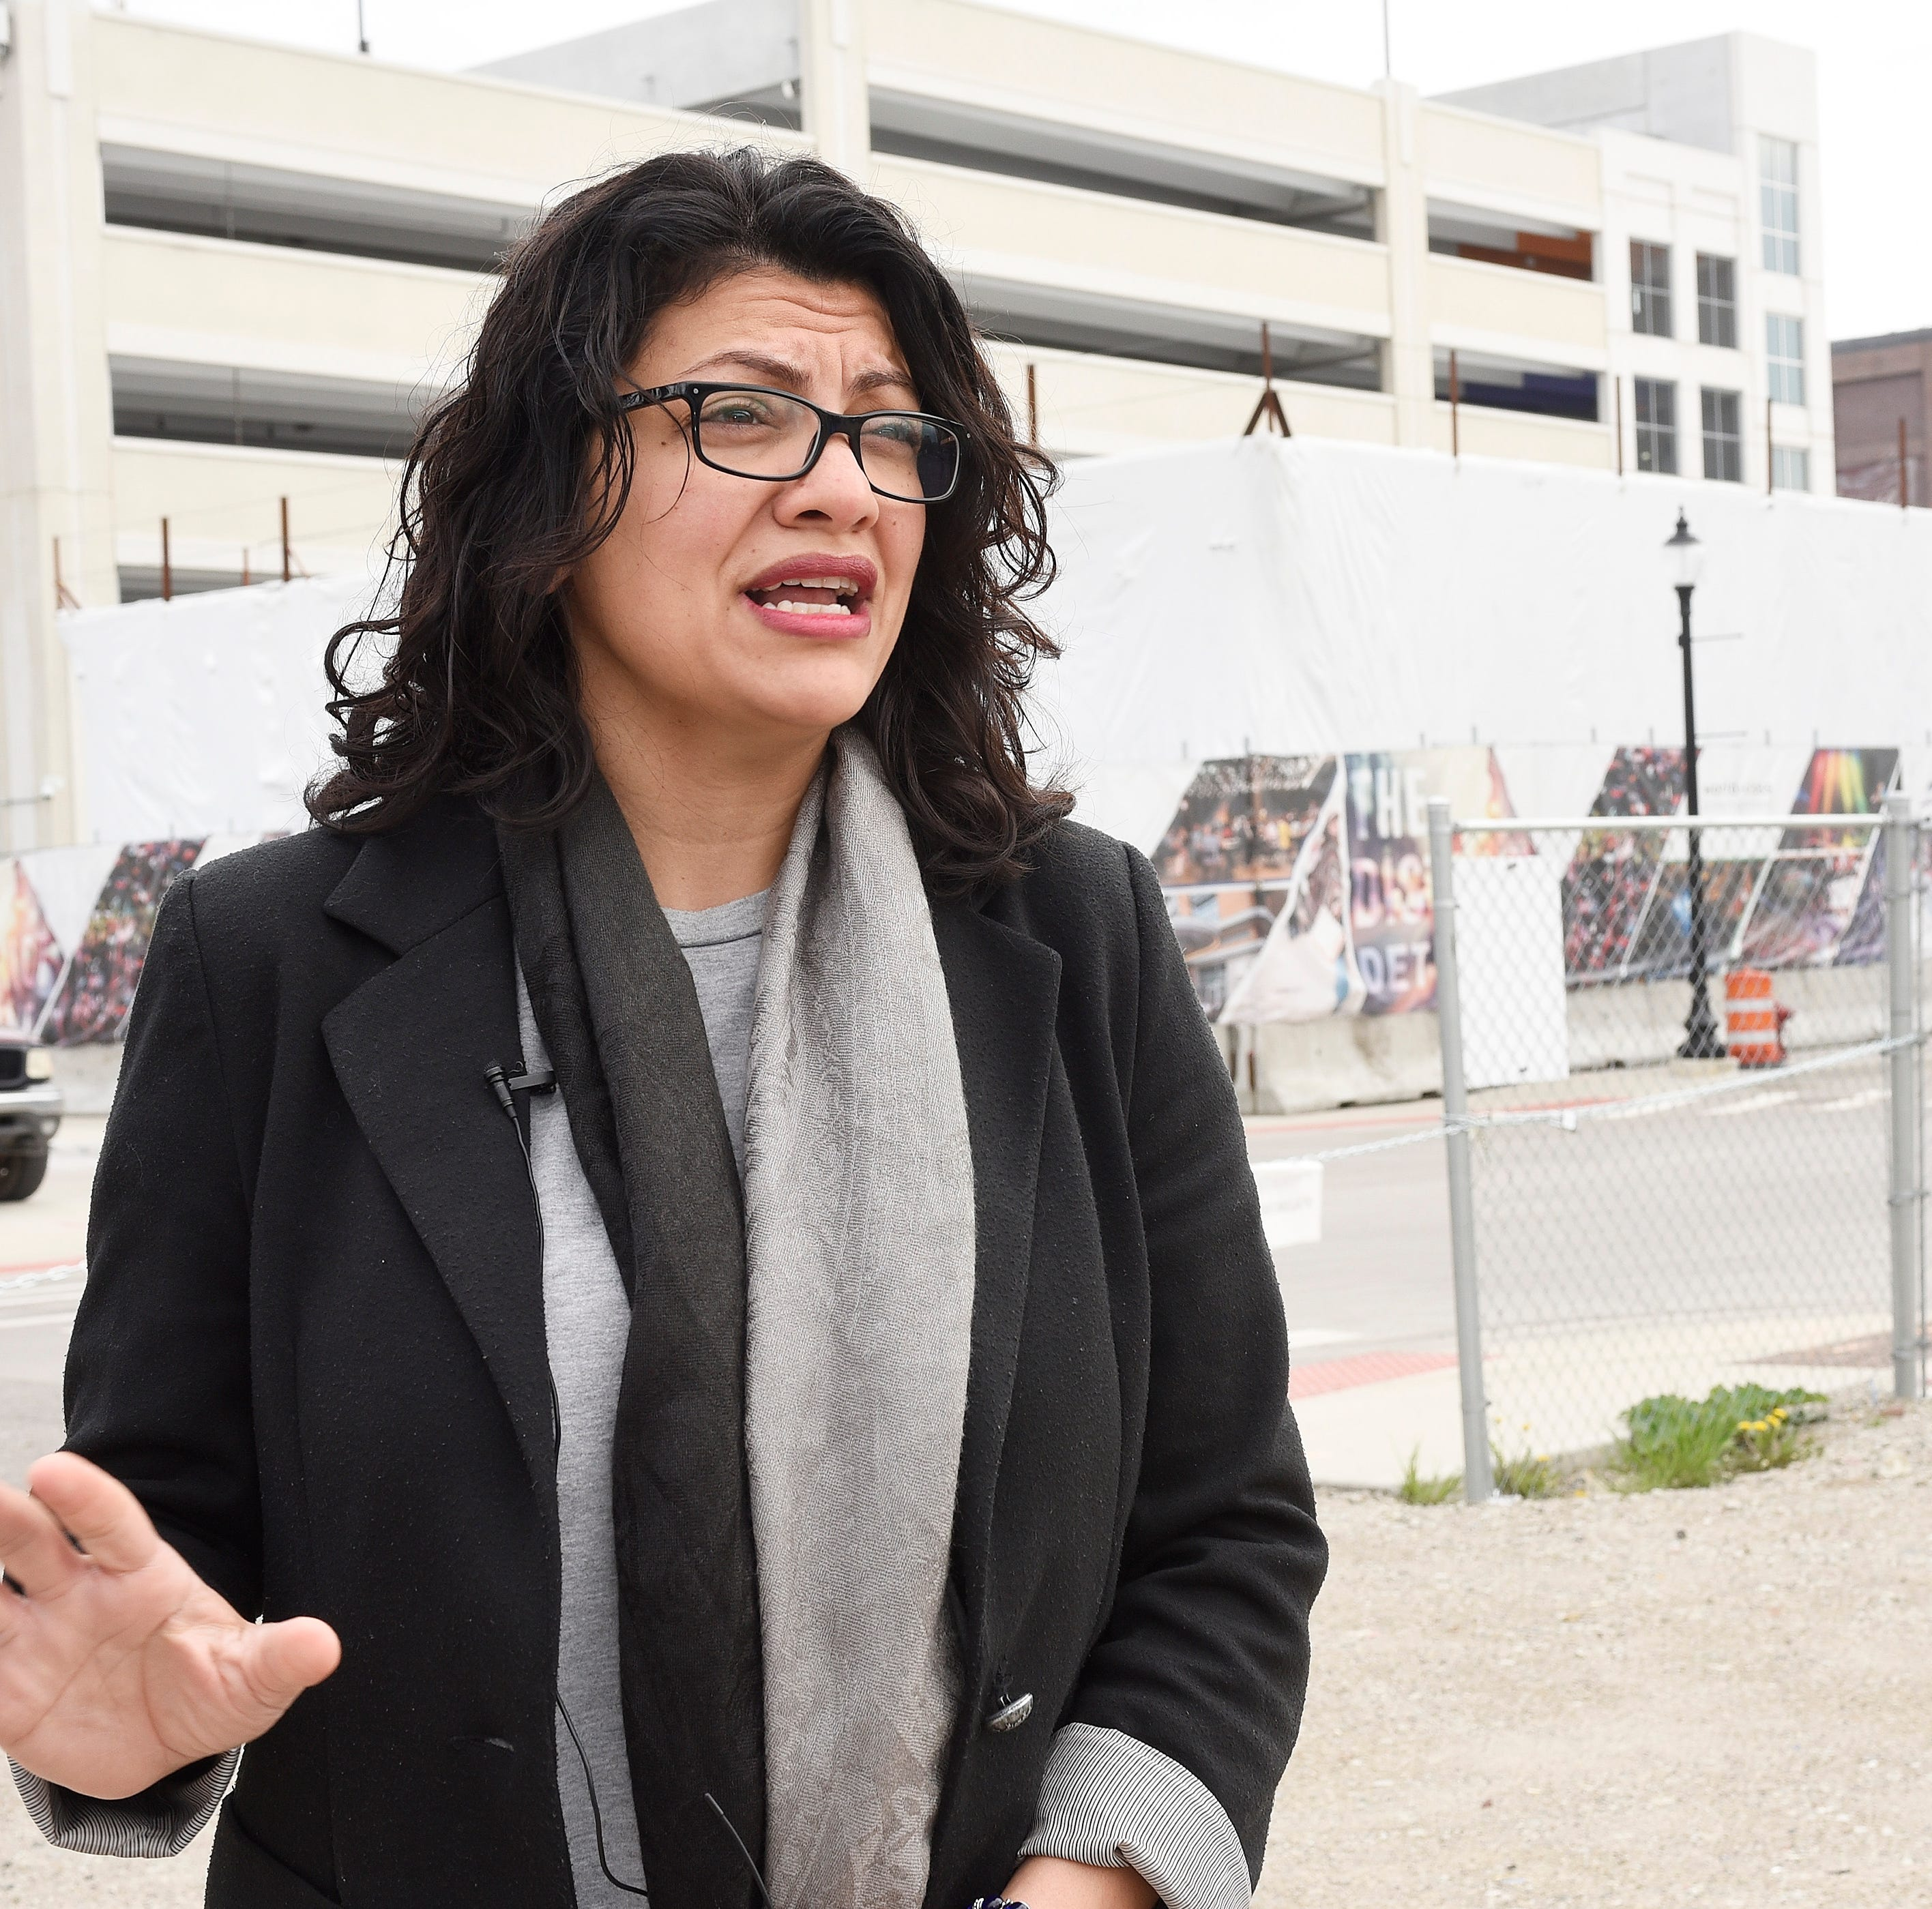 Tlaib says critics are 'twisting' her words as Trump attacks in tweet